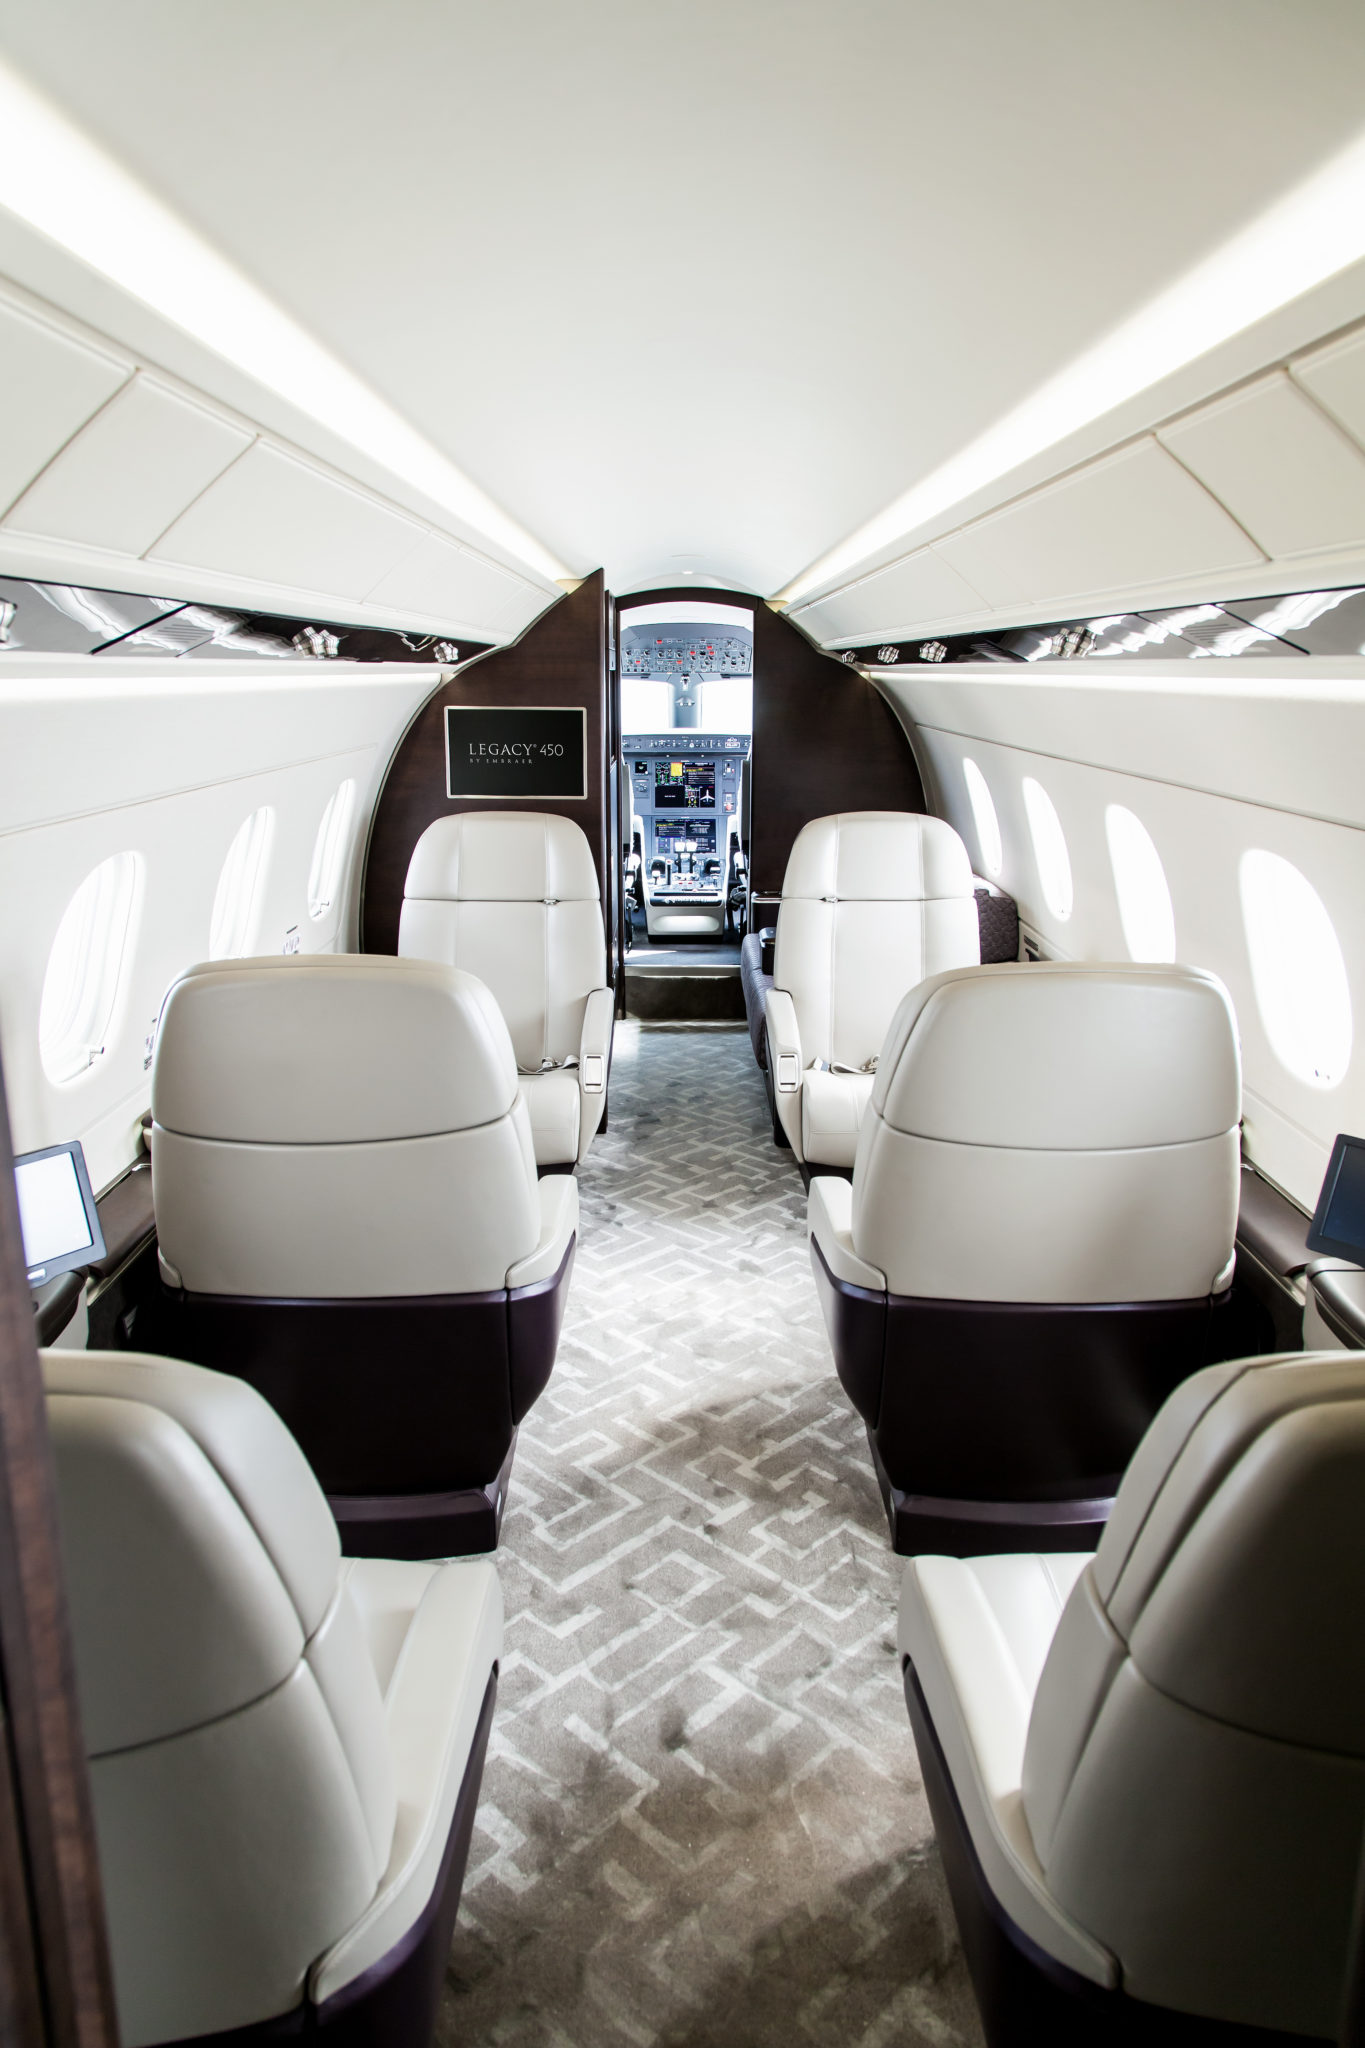 Lights on view on the Legacy 450 cabin interior. Image: Embraer